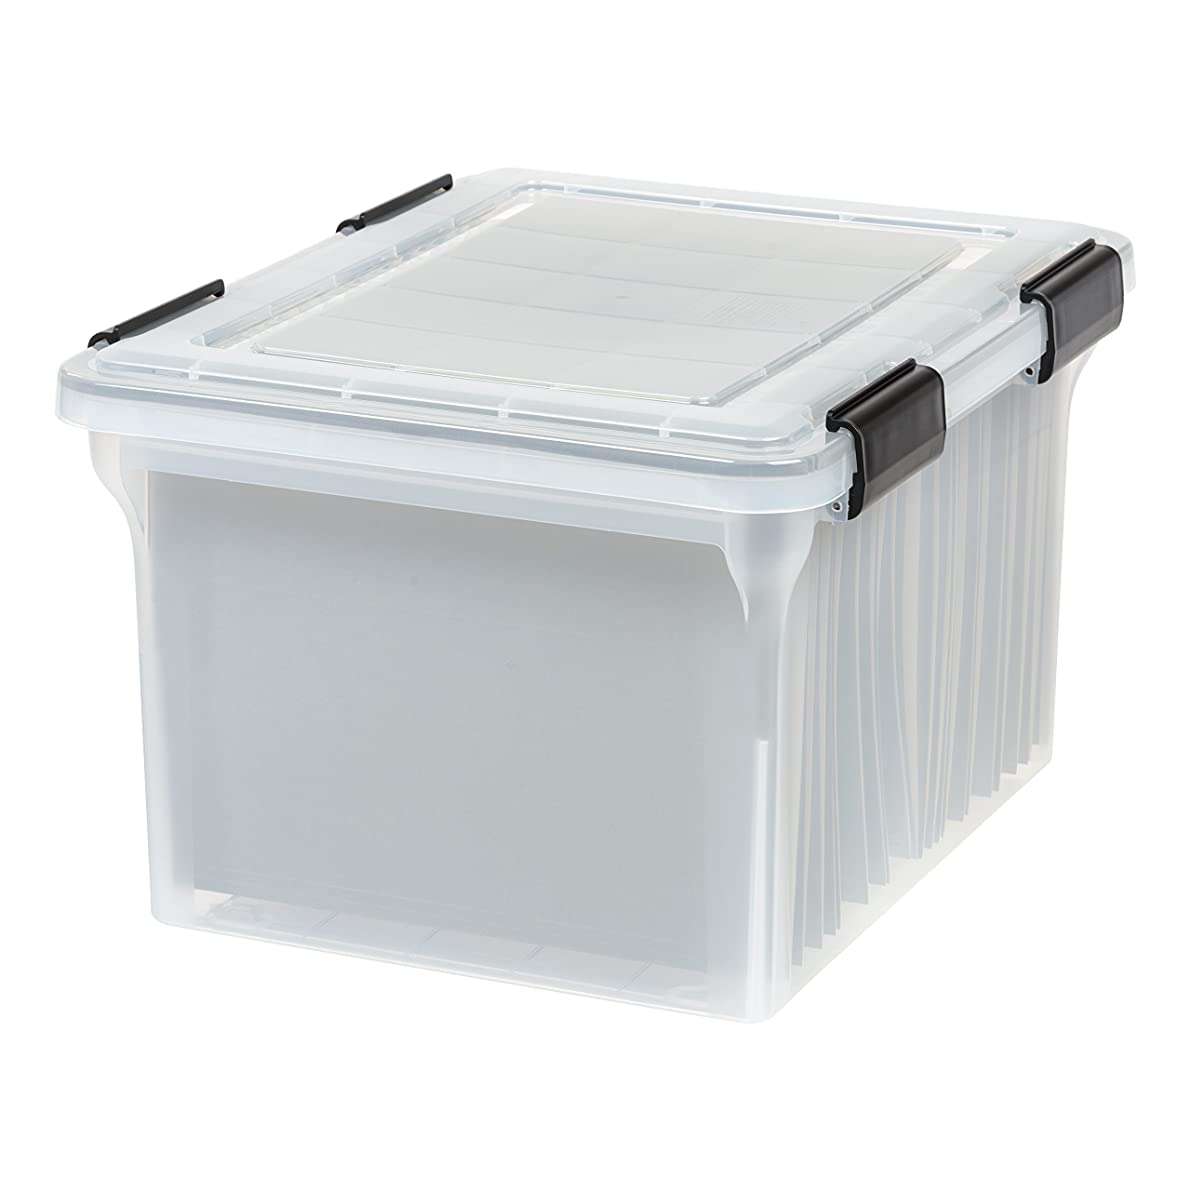 IRIS Letter and Legal Size WEATHERTIGHT File Box, Clear